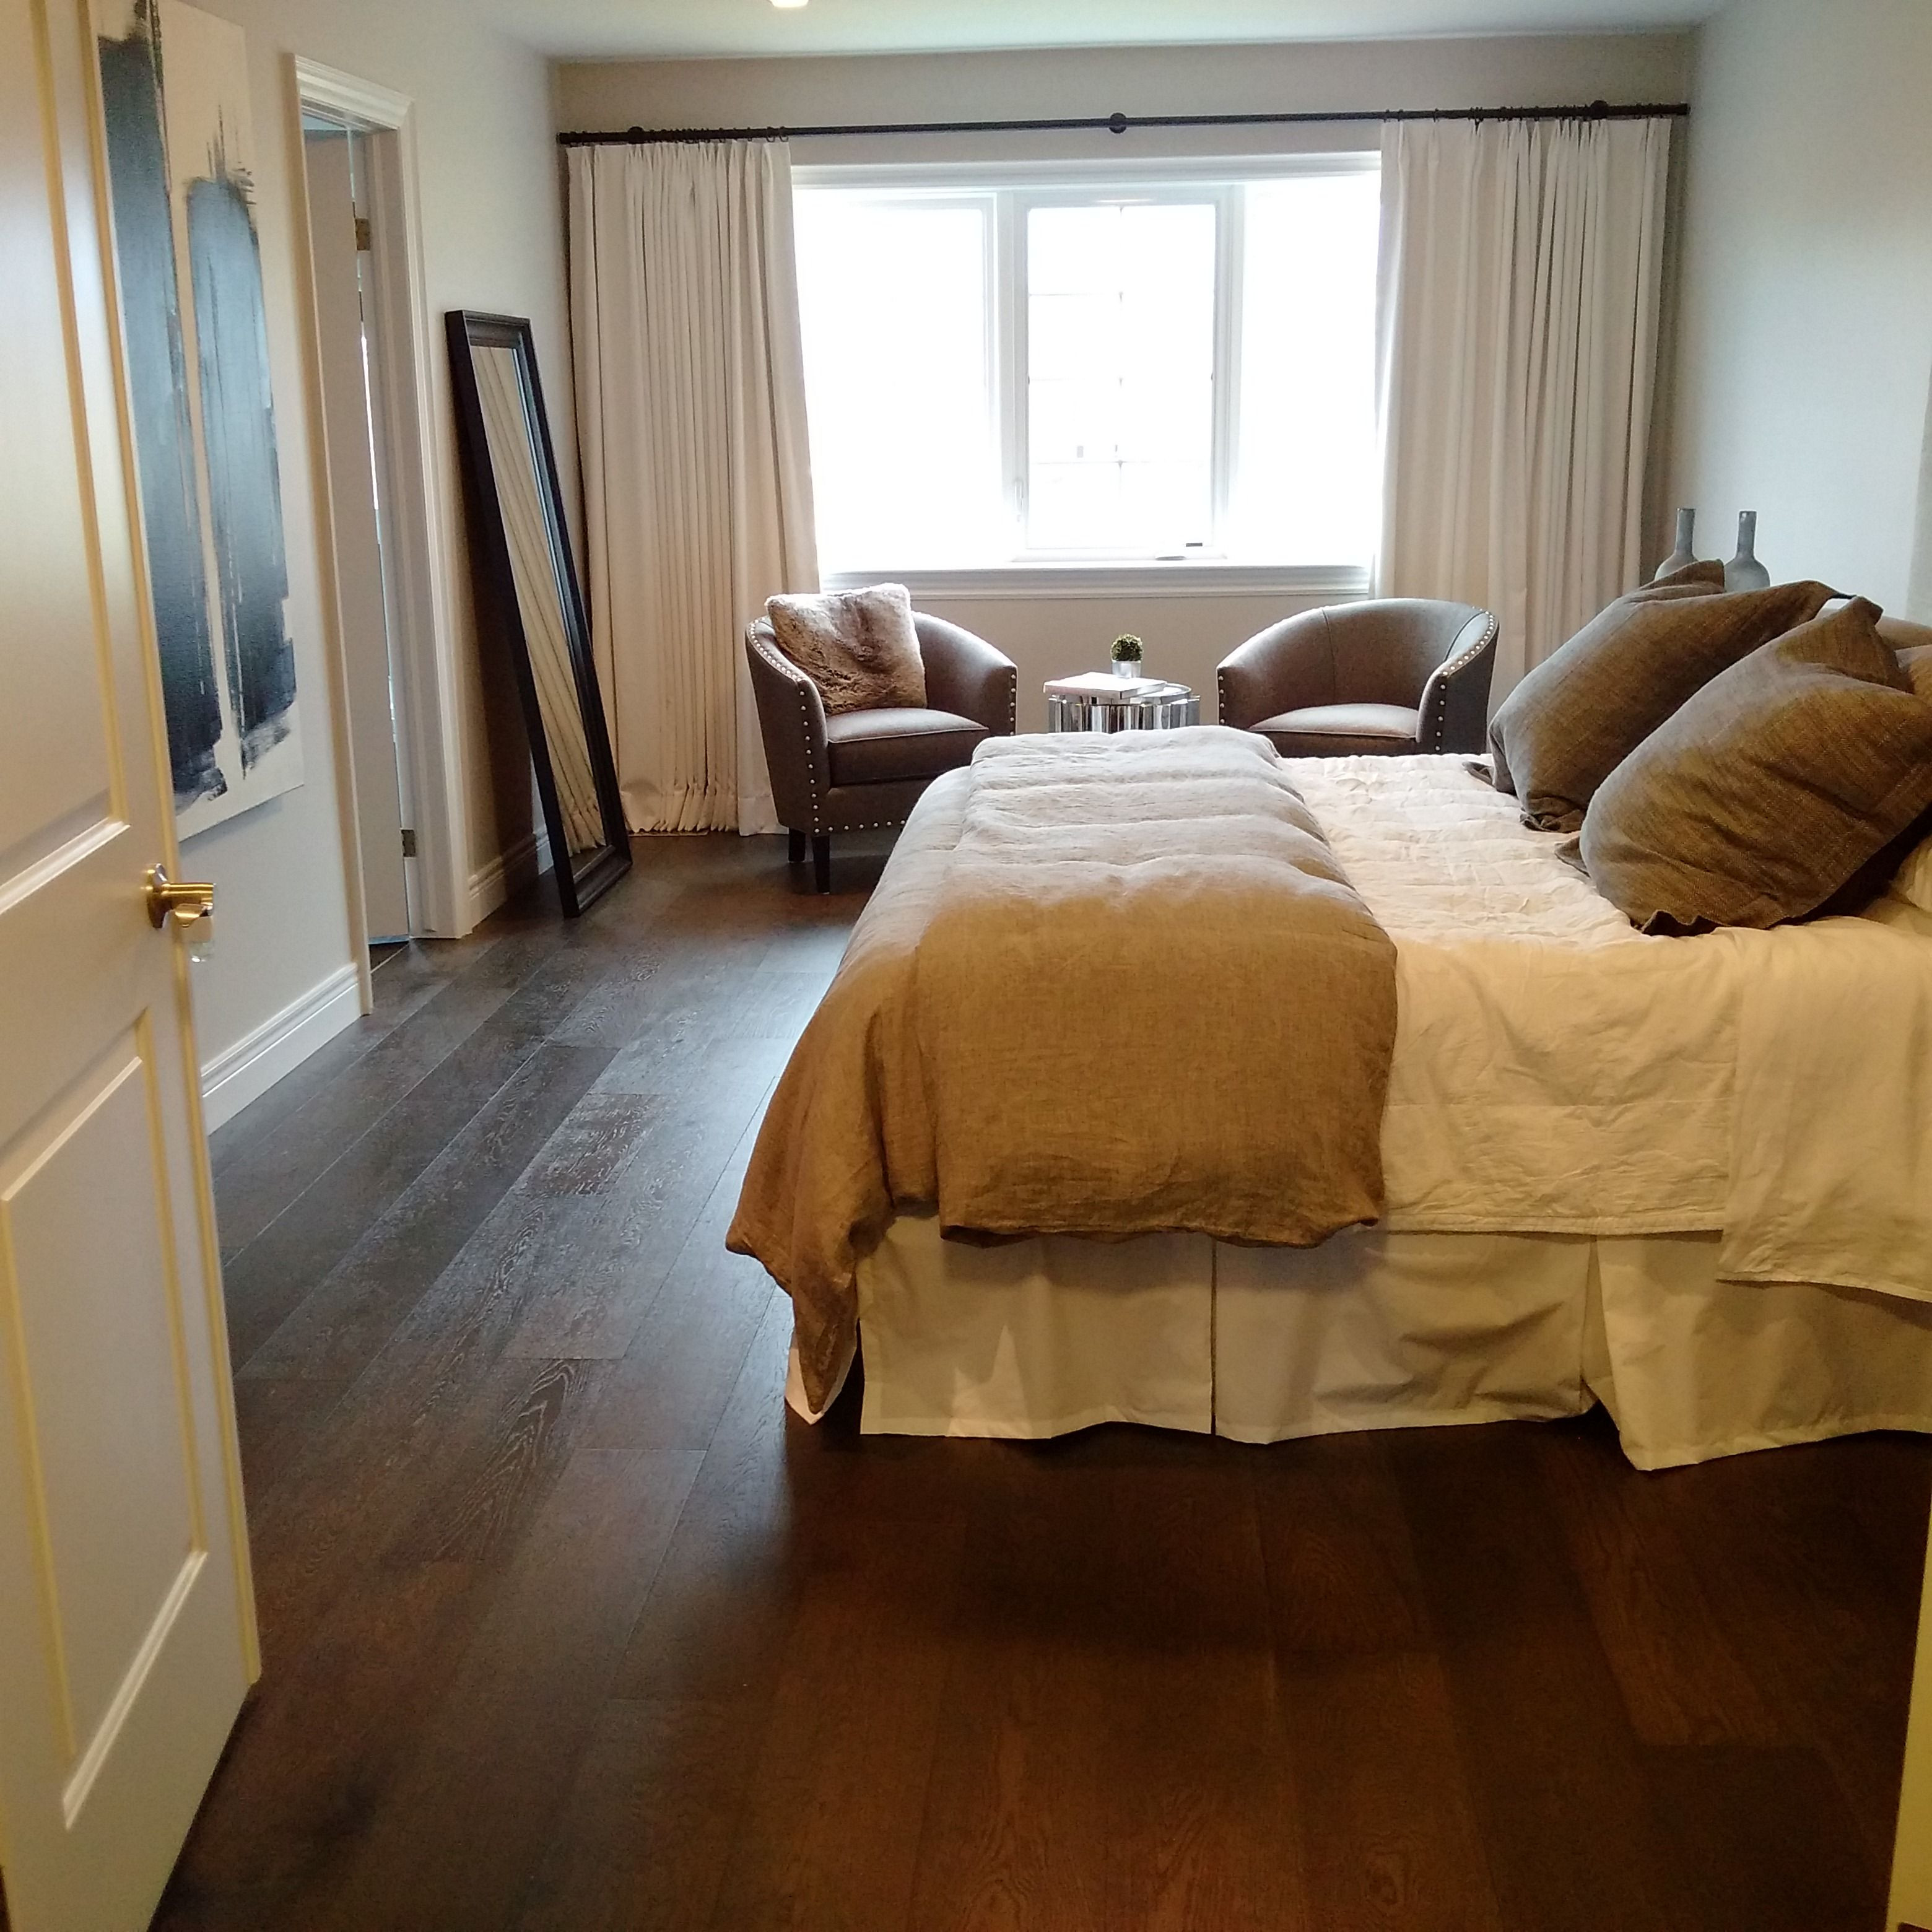 hardwood flooring calgary of cita designer white oak character lauzon hardwood flooring throughout love this beautiful bedroom featuring our cita hardwood floor from our urban loft series wire brushed floors are perfect to give an interesting depth to